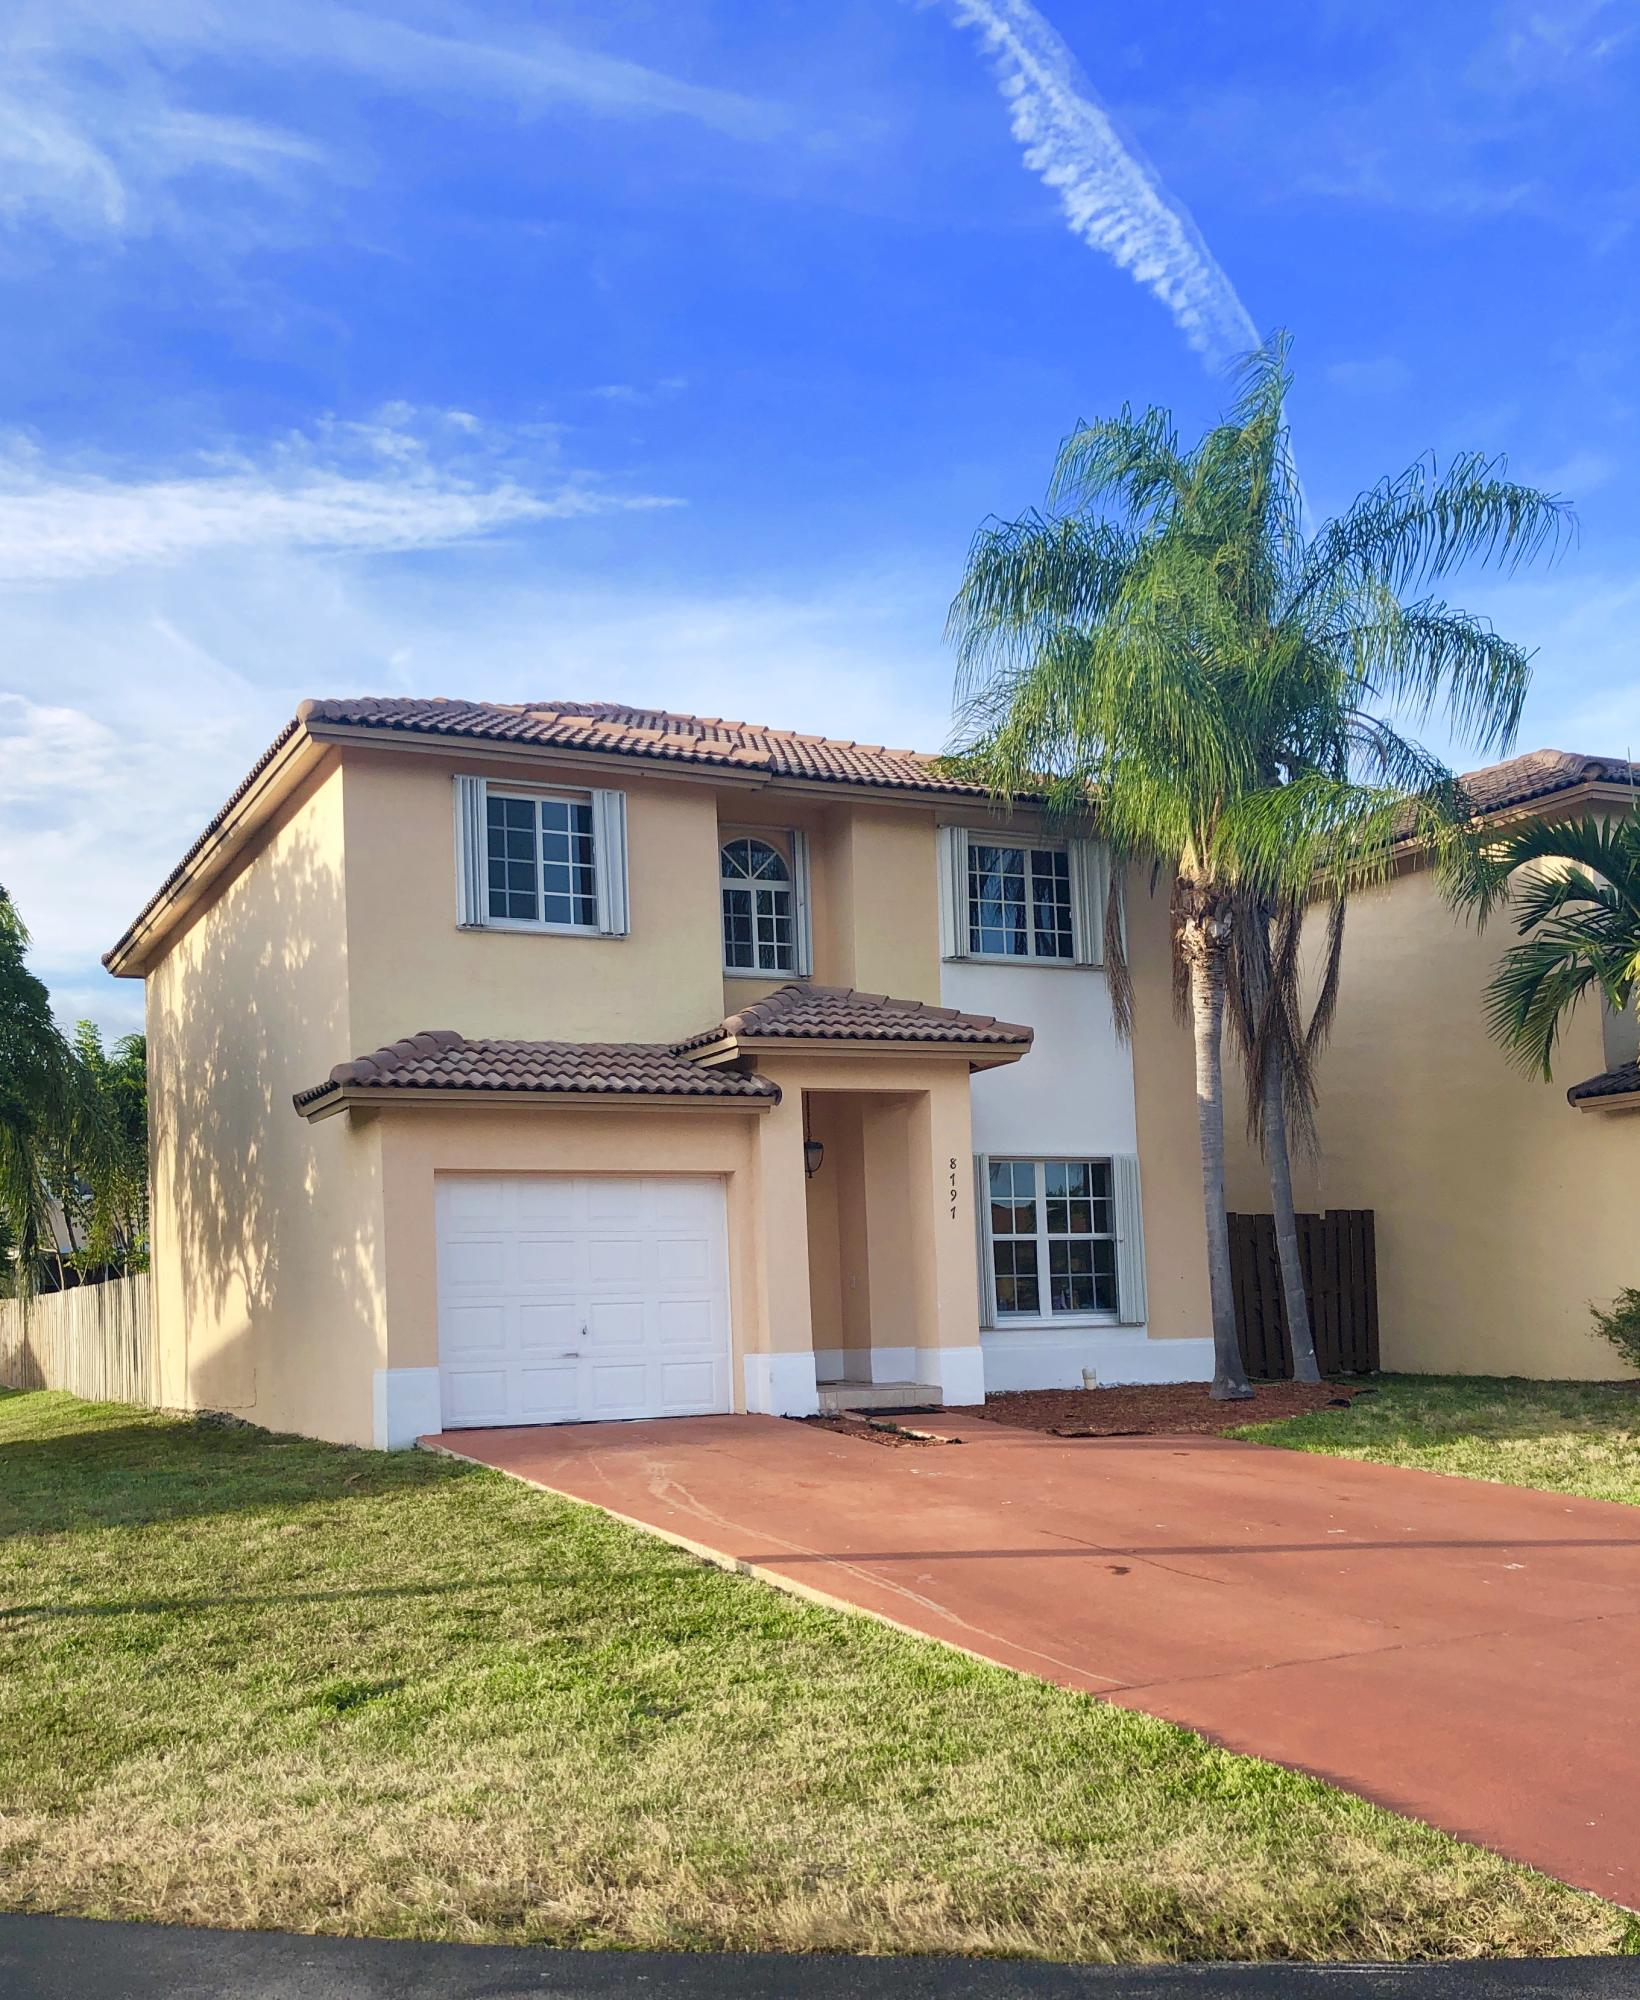 Residenza monofamiliare in vendita in 8797 SW 214th Lane, Cutler Bay, Florida ,33189